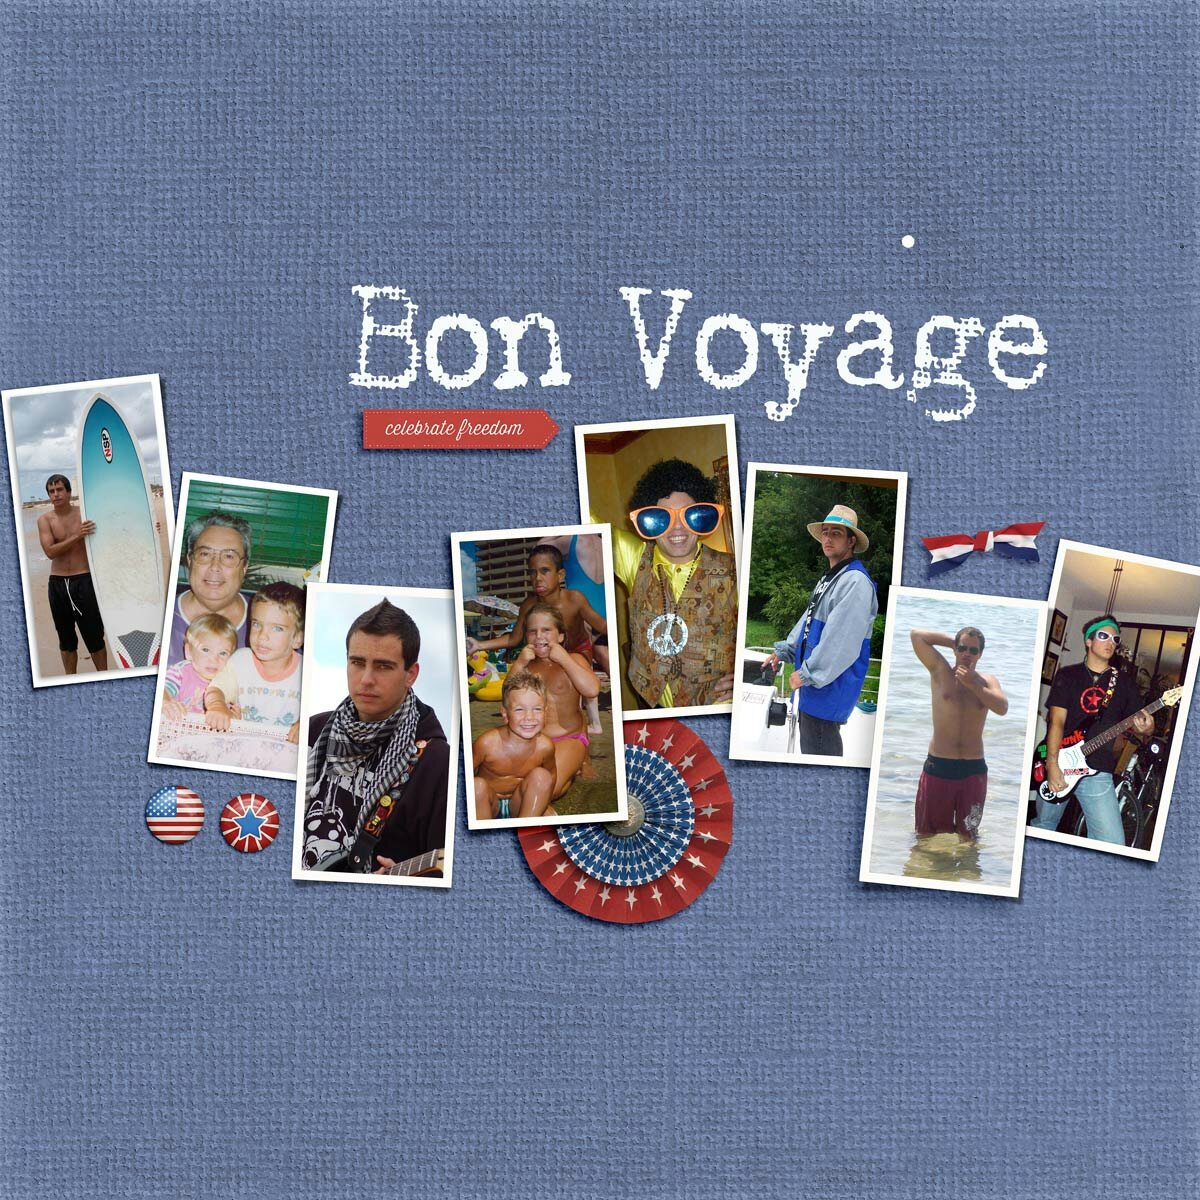 Celebrate Freedom (Bon Voyage)